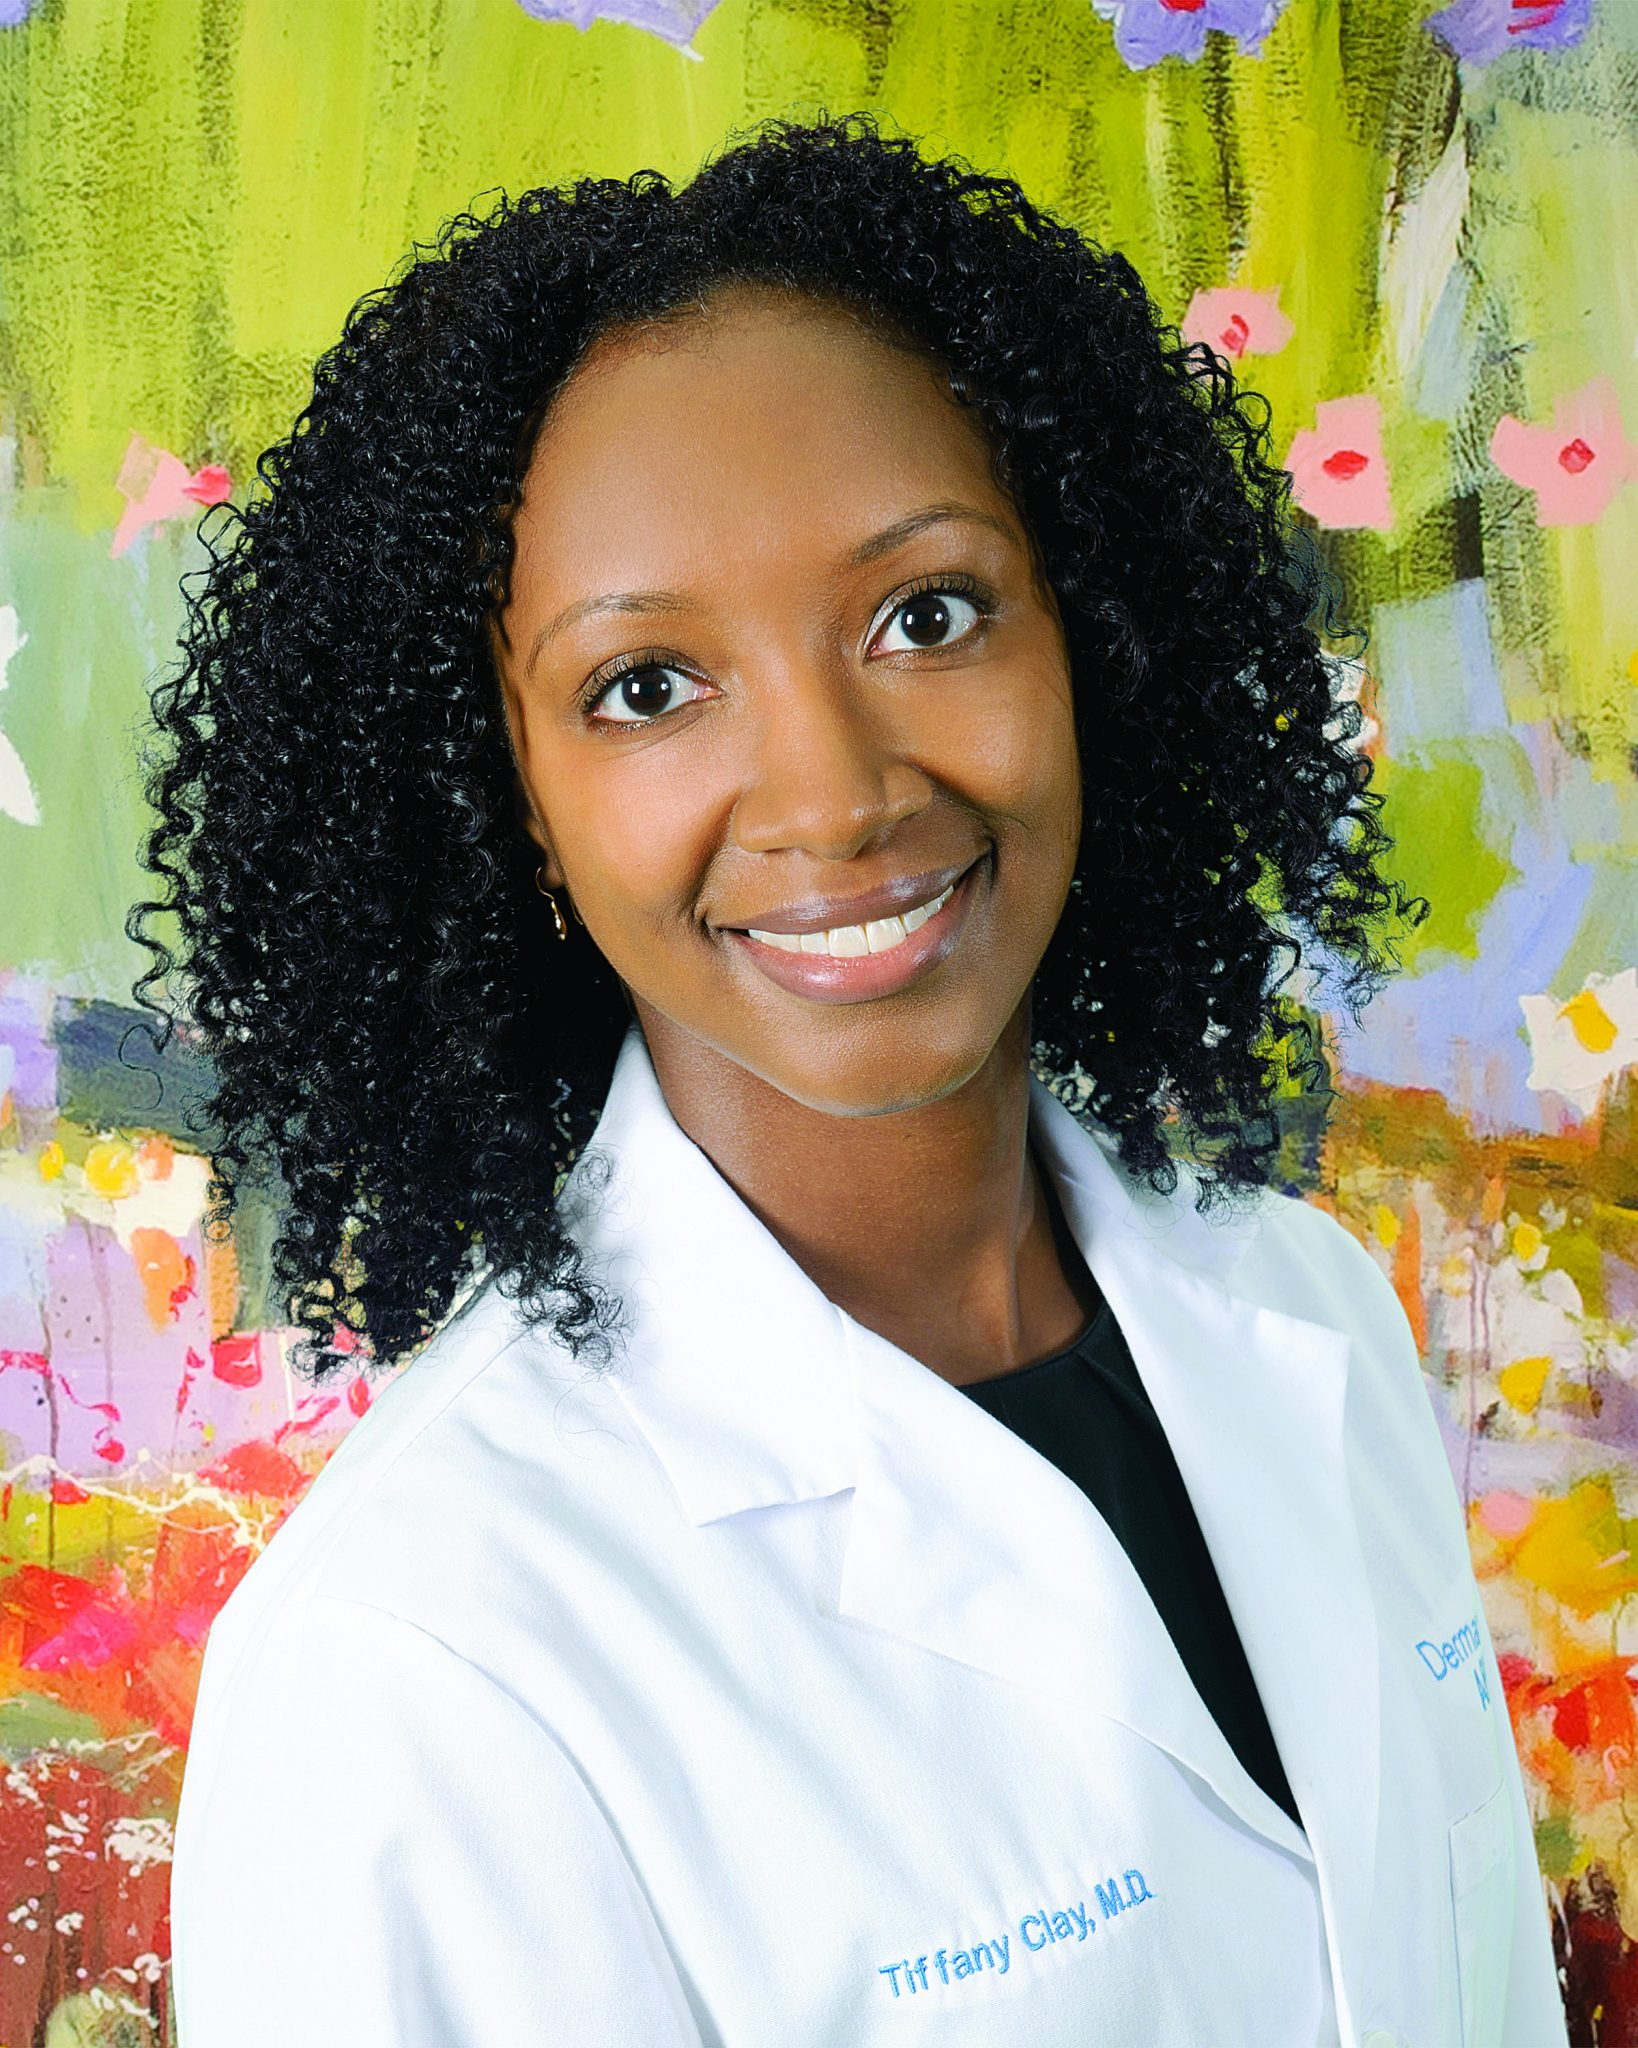 Meet Dr. Tiffany Clay at Dermatology Affiliates